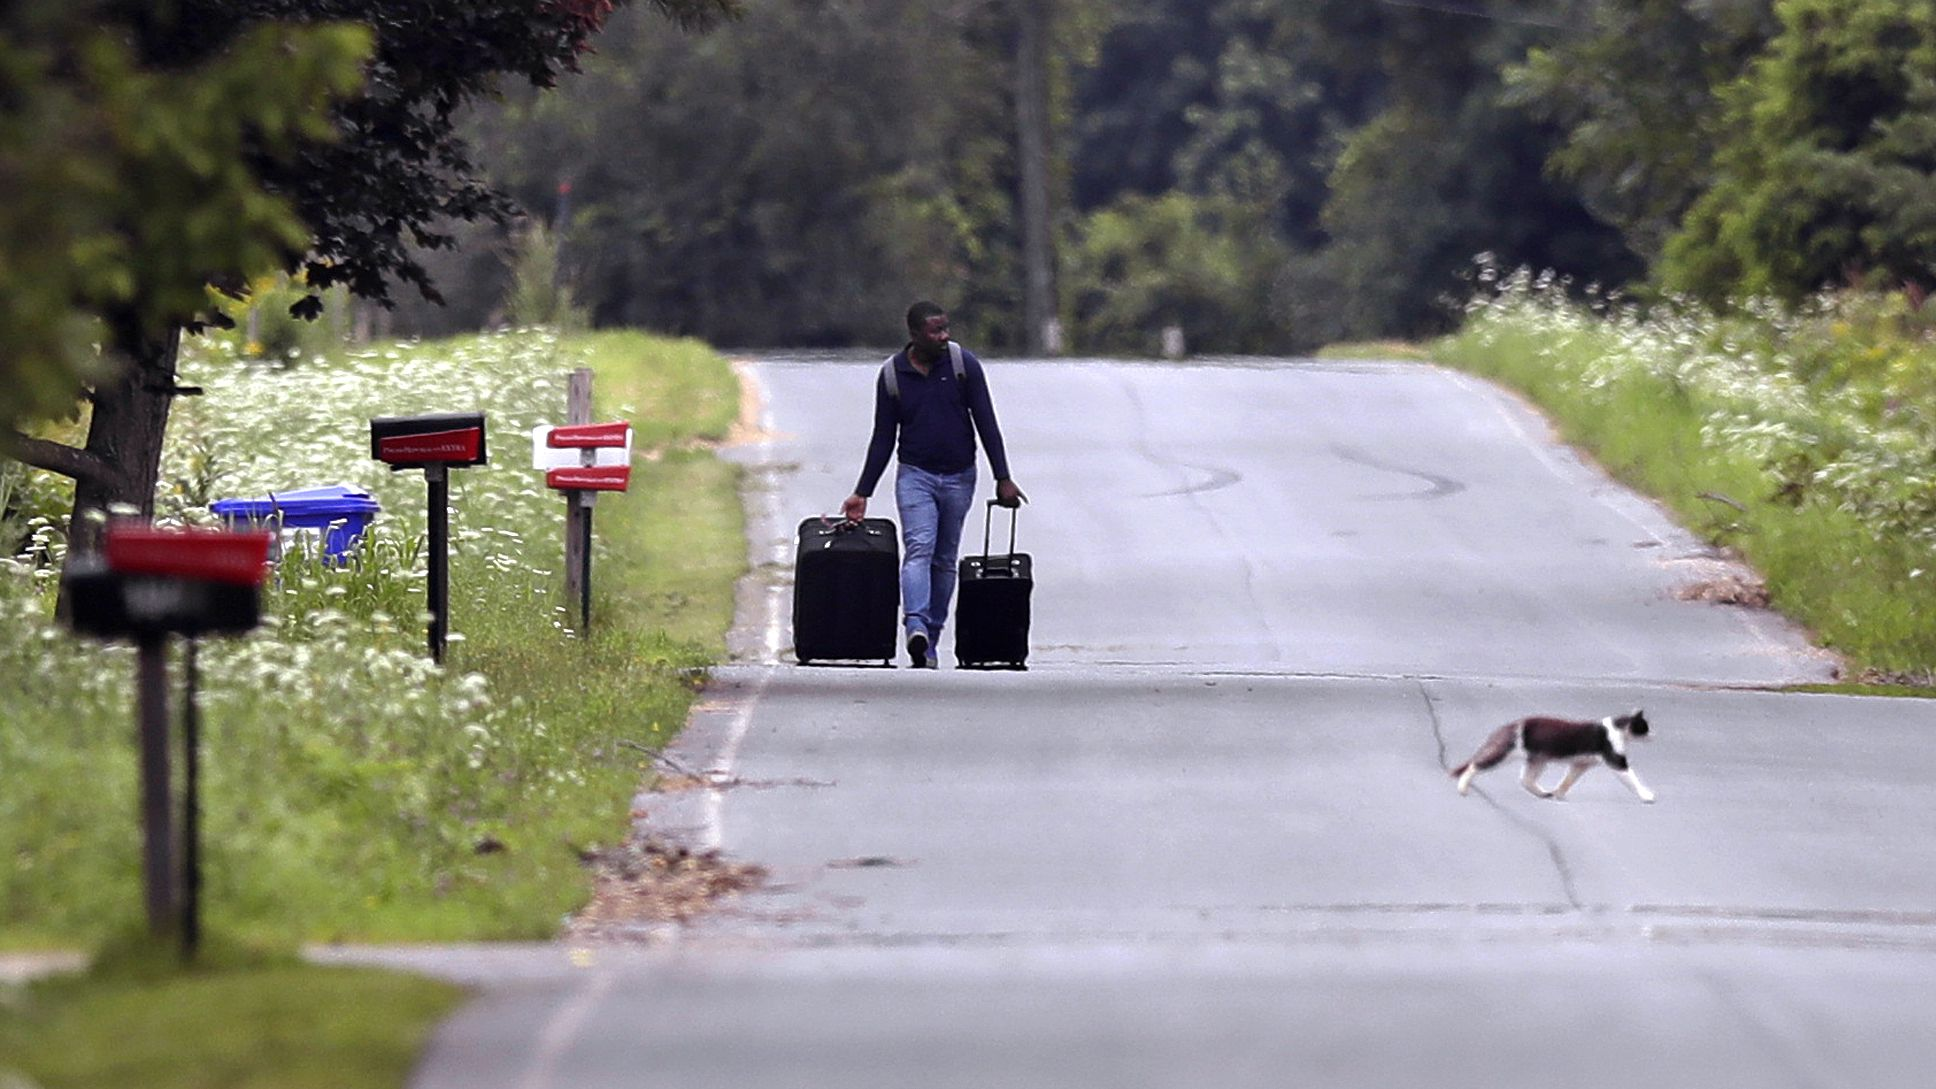 Dulne Brutus, of Haiti, tows his luggage down Roxham Road in Champlain, N.Y., while heading to an unofficial border station across from Saint-Bernard-de-Lacolle, Quebec, Monday, Aug. 7, 2017. Officials on both sides of the border first began to notice last fall, around the time of the U.S. presidential election, that more people were crossing at Roxham Road. Since then the numbers have continued to climb.